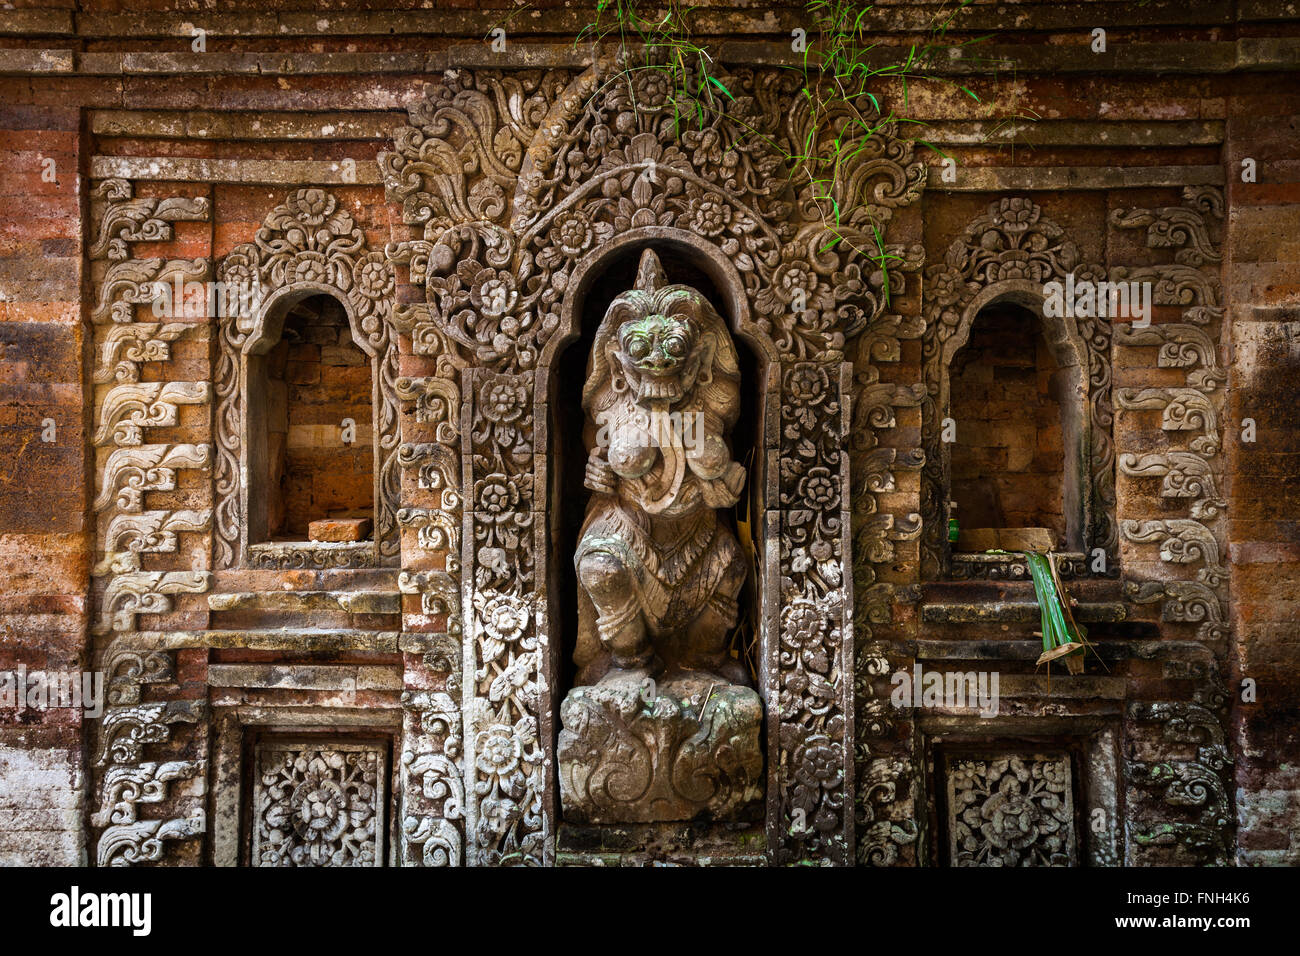 Rangda the demon queen statue in Ubud Palace, Bali, Indonesia. Stock Photo